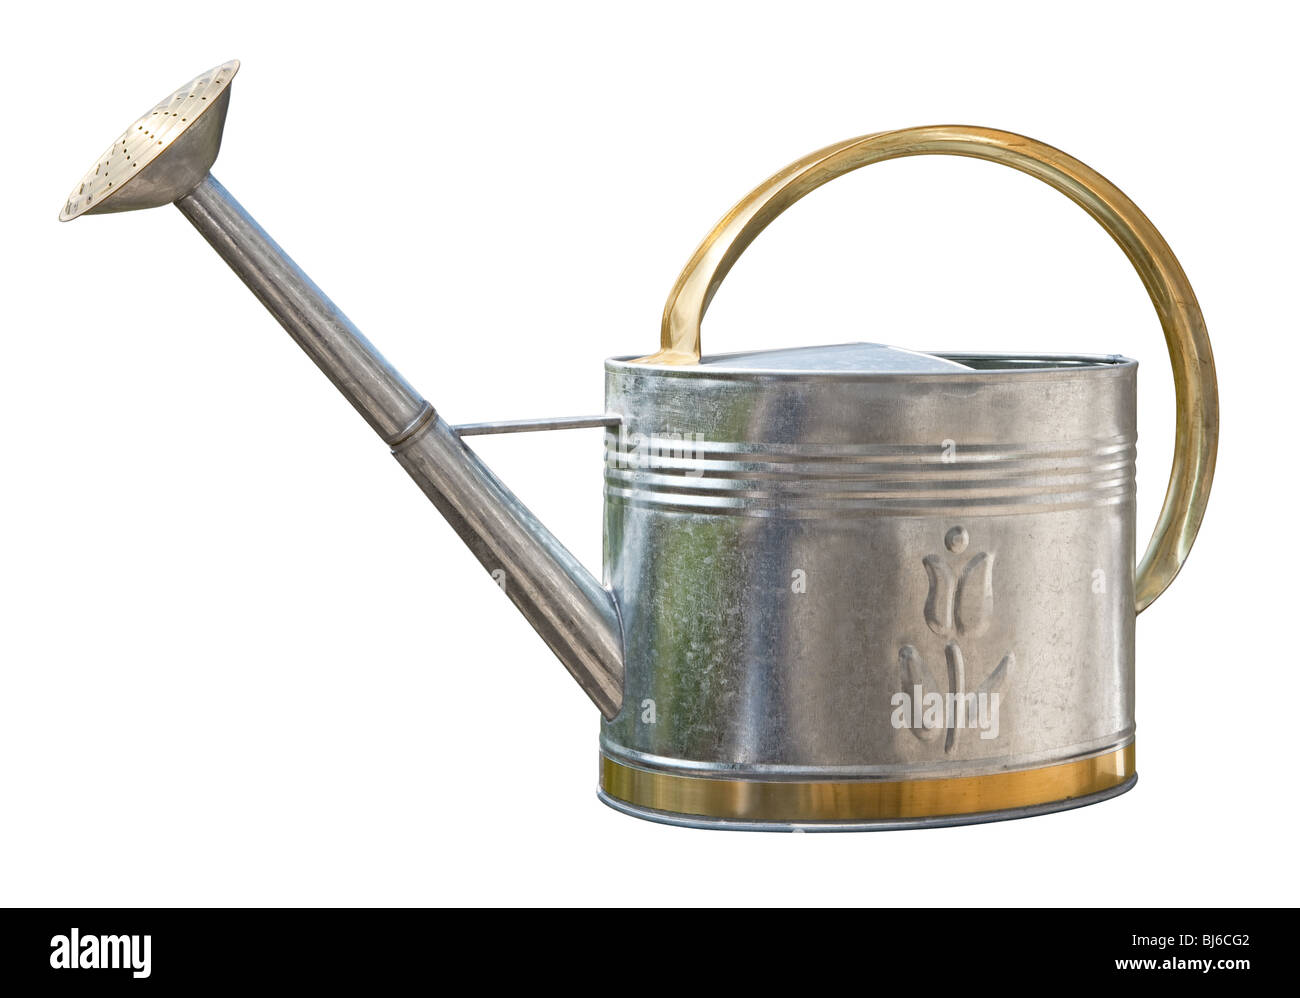 Antique Watering Can isolated on white - Stock Image